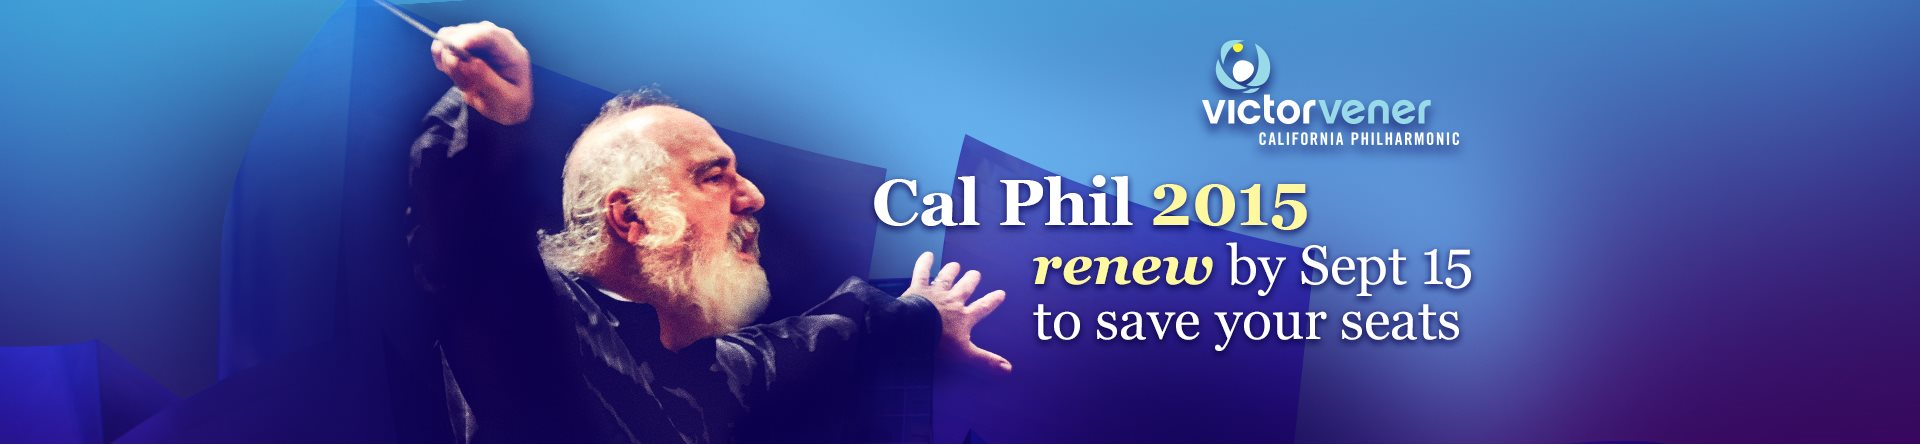 Cal-Phil_Home-header-082514.jpg